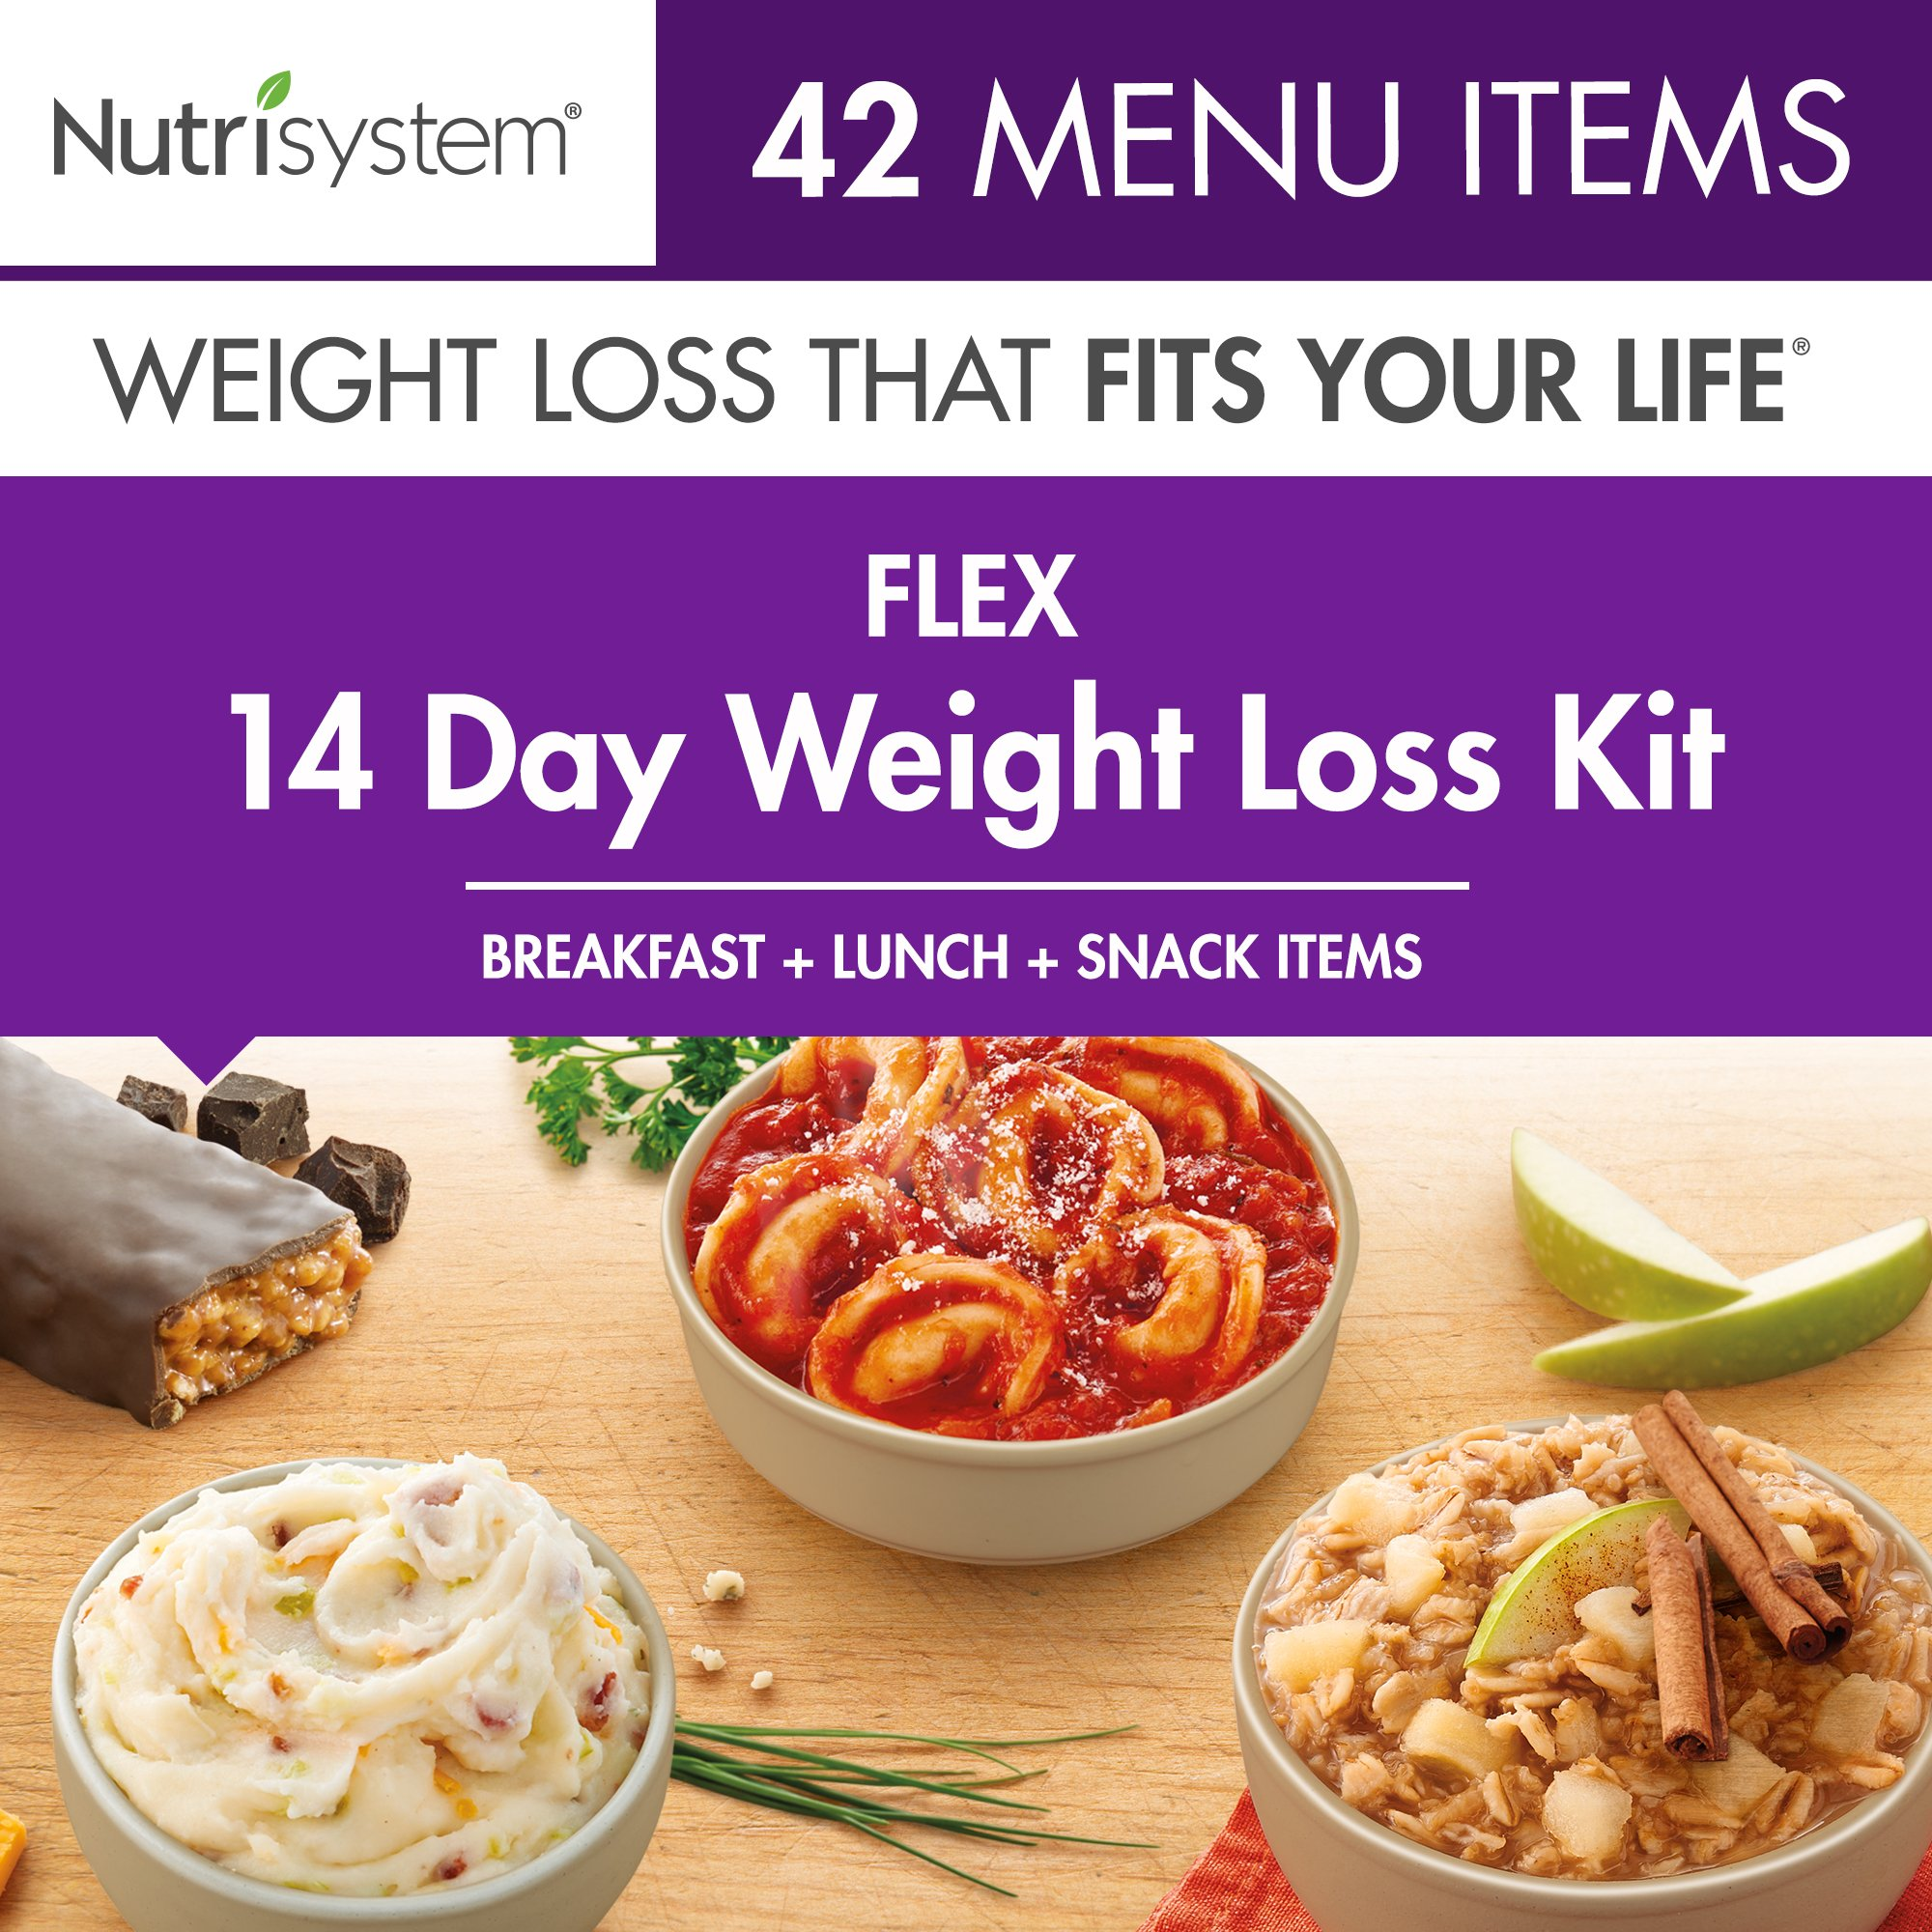 6 Go-to Breakfasts for Weight Loss 6 Go-to Breakfasts for Weight Loss new picture